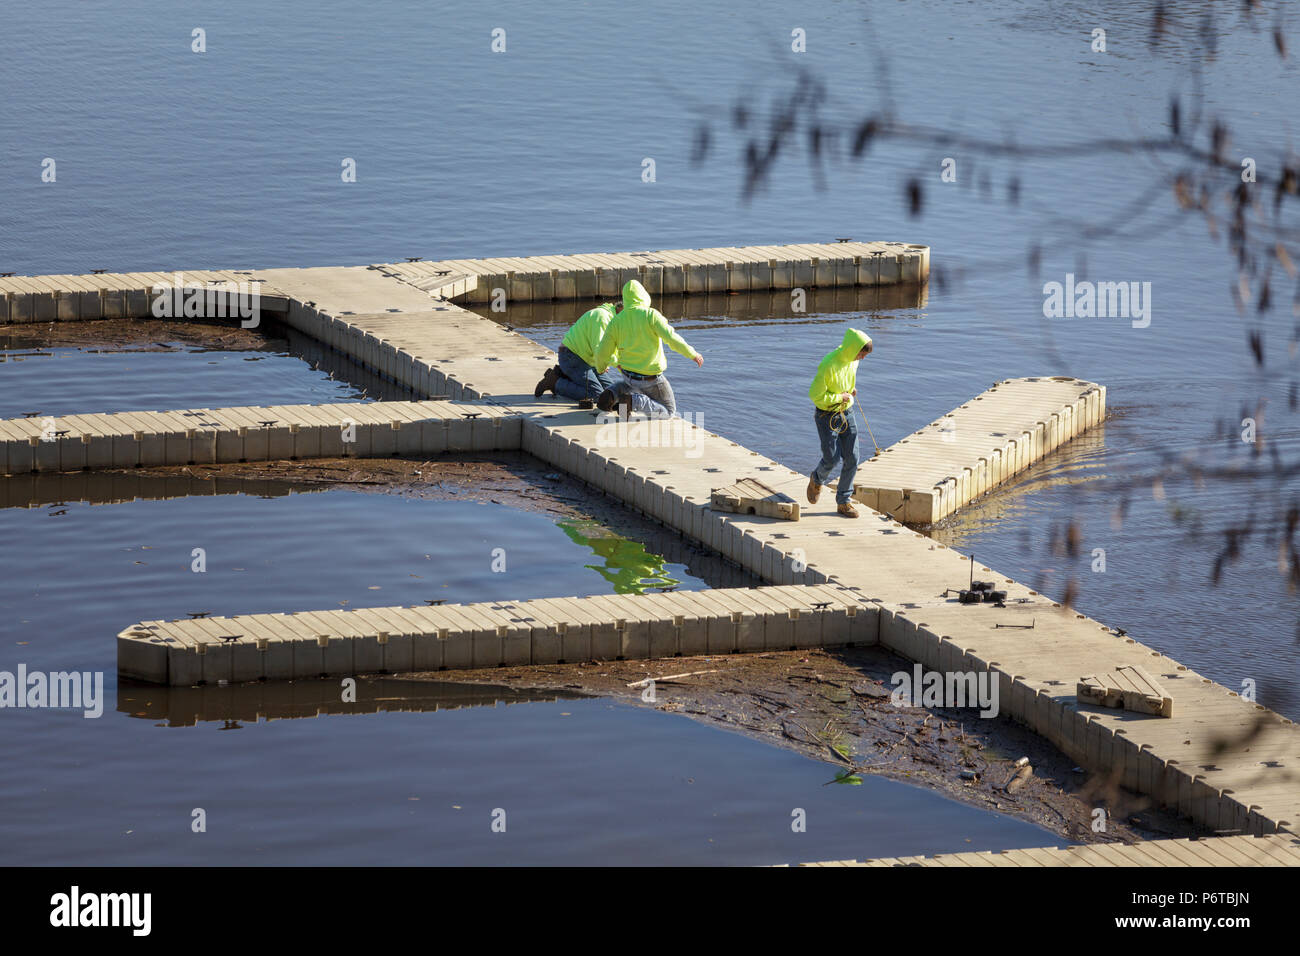 St. Johnsville, New York, USA: At St. Johnsville marina, town employees put the docks away for the winter. - Stock Image